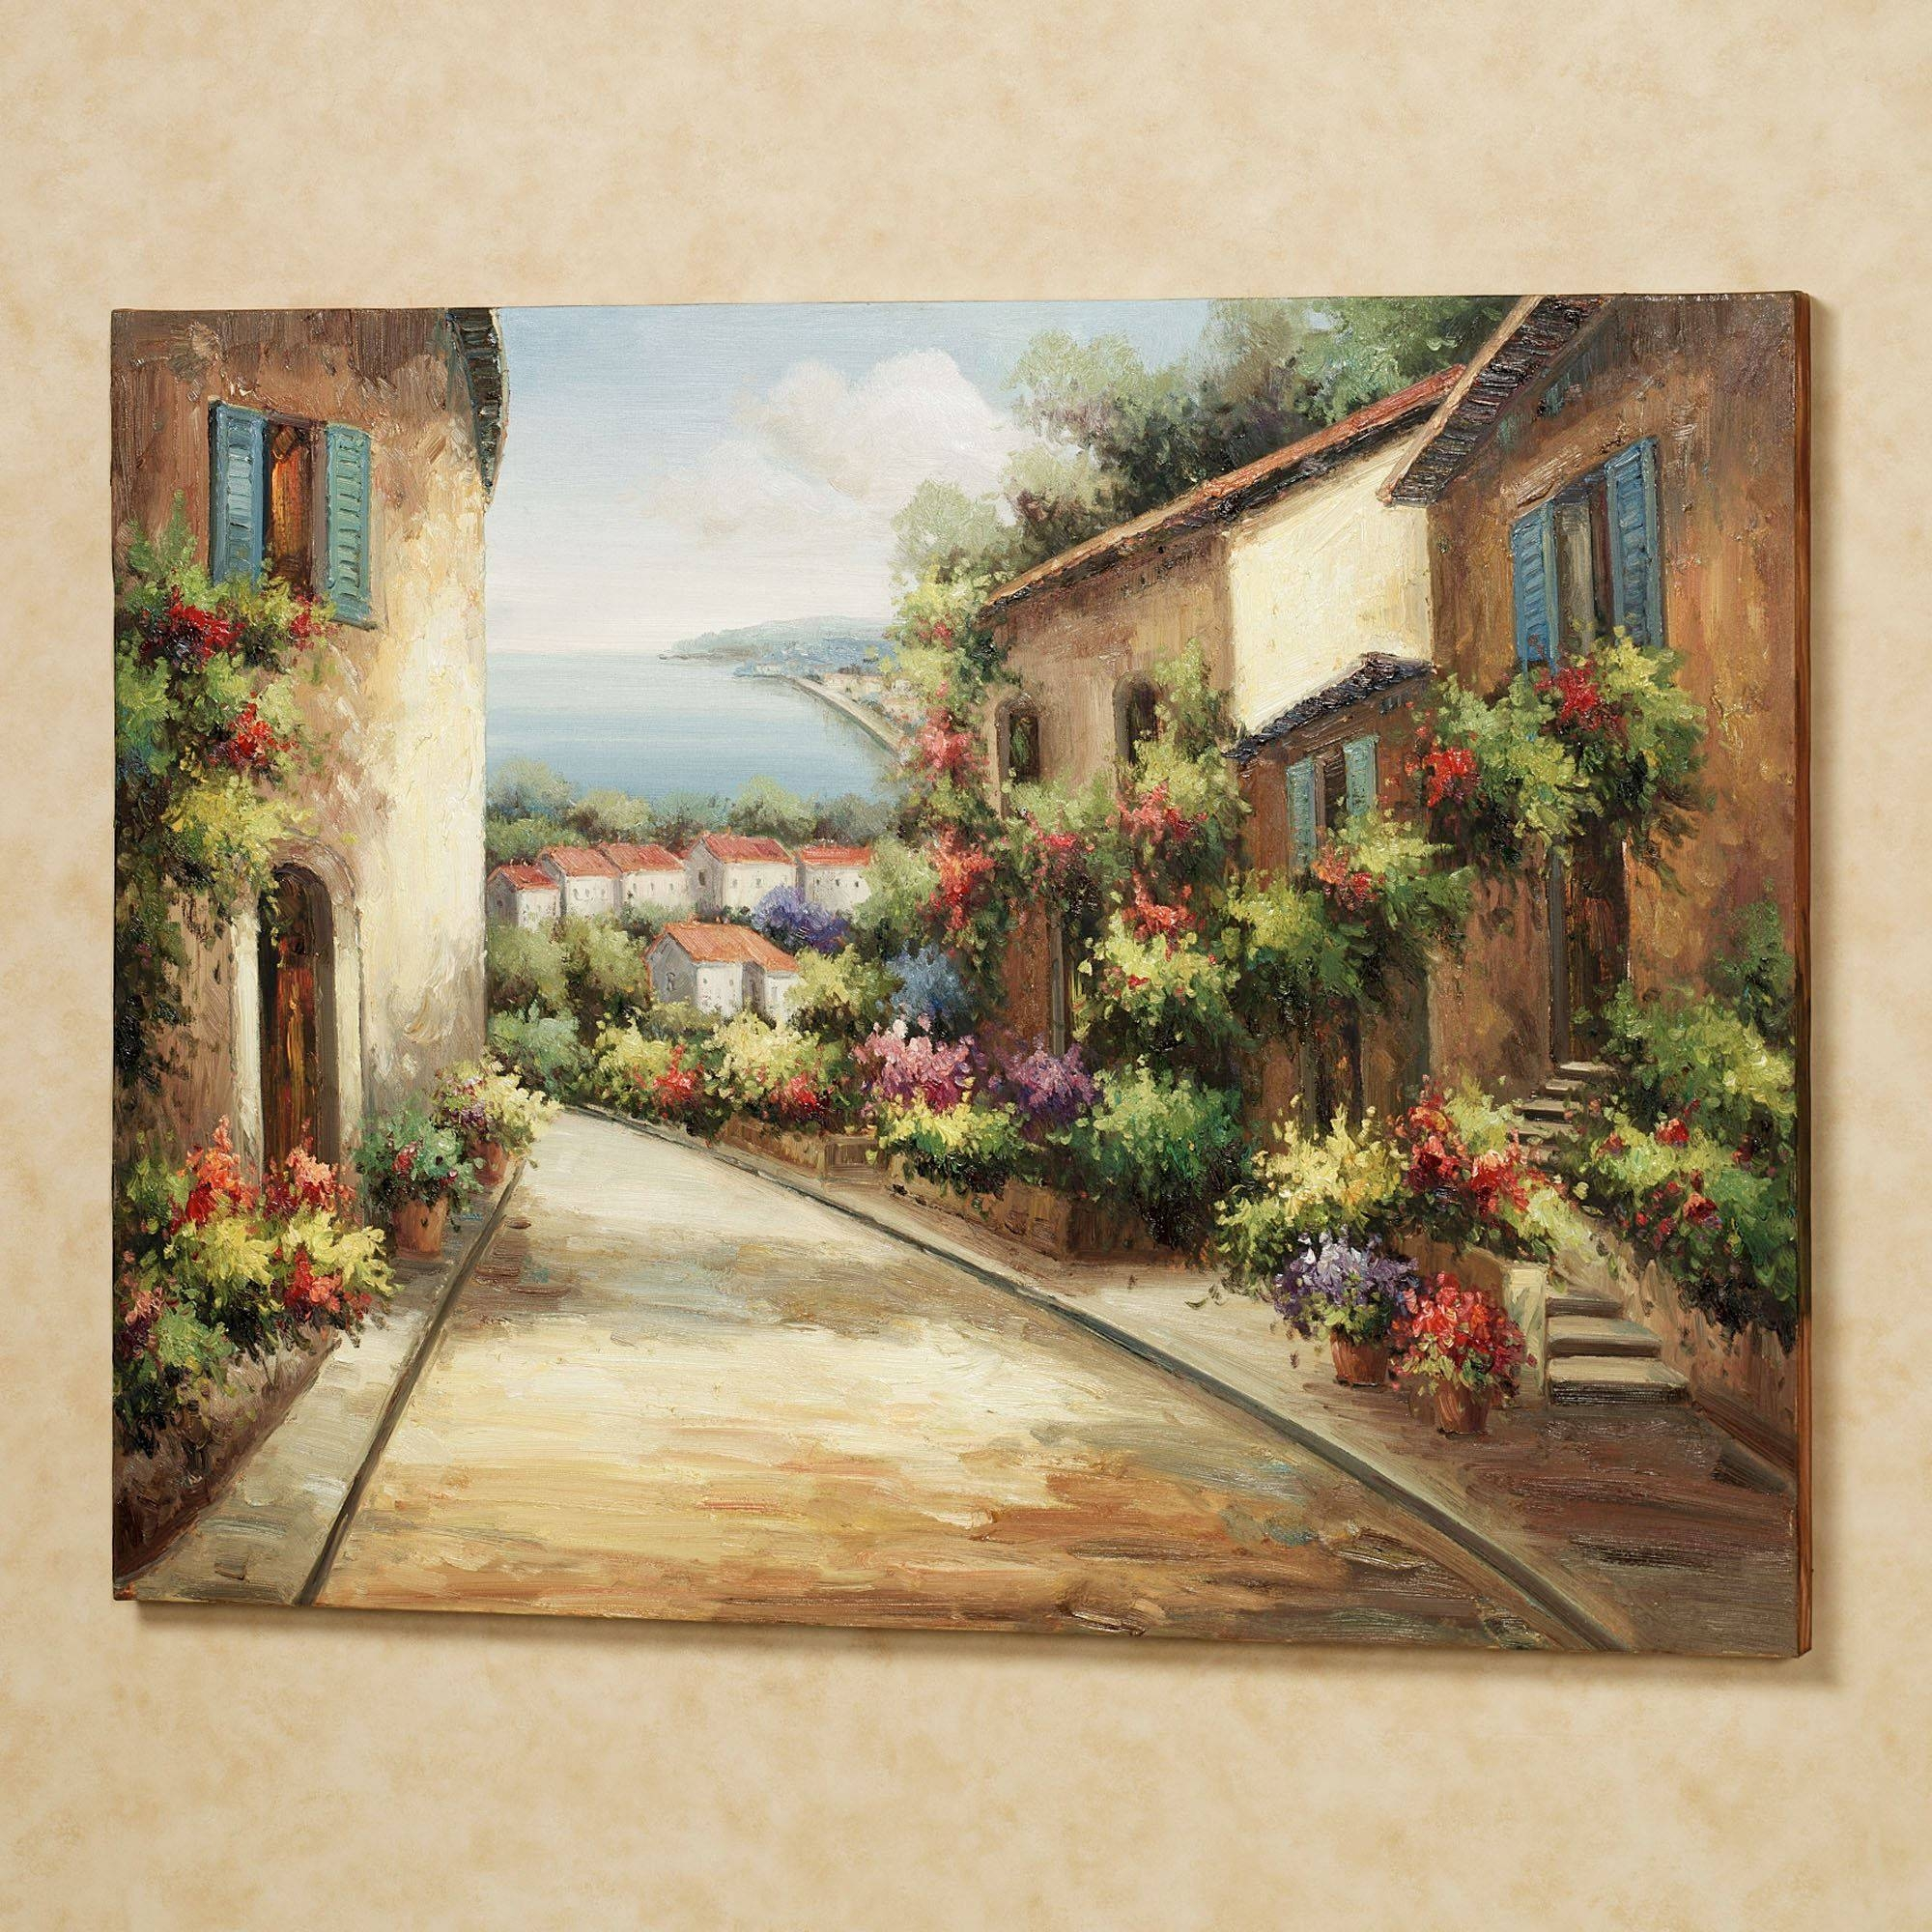 Streets Of Tuscany Canvas Wall Art Inside Most Popular Tuscany Wall Art (View 5 of 20)